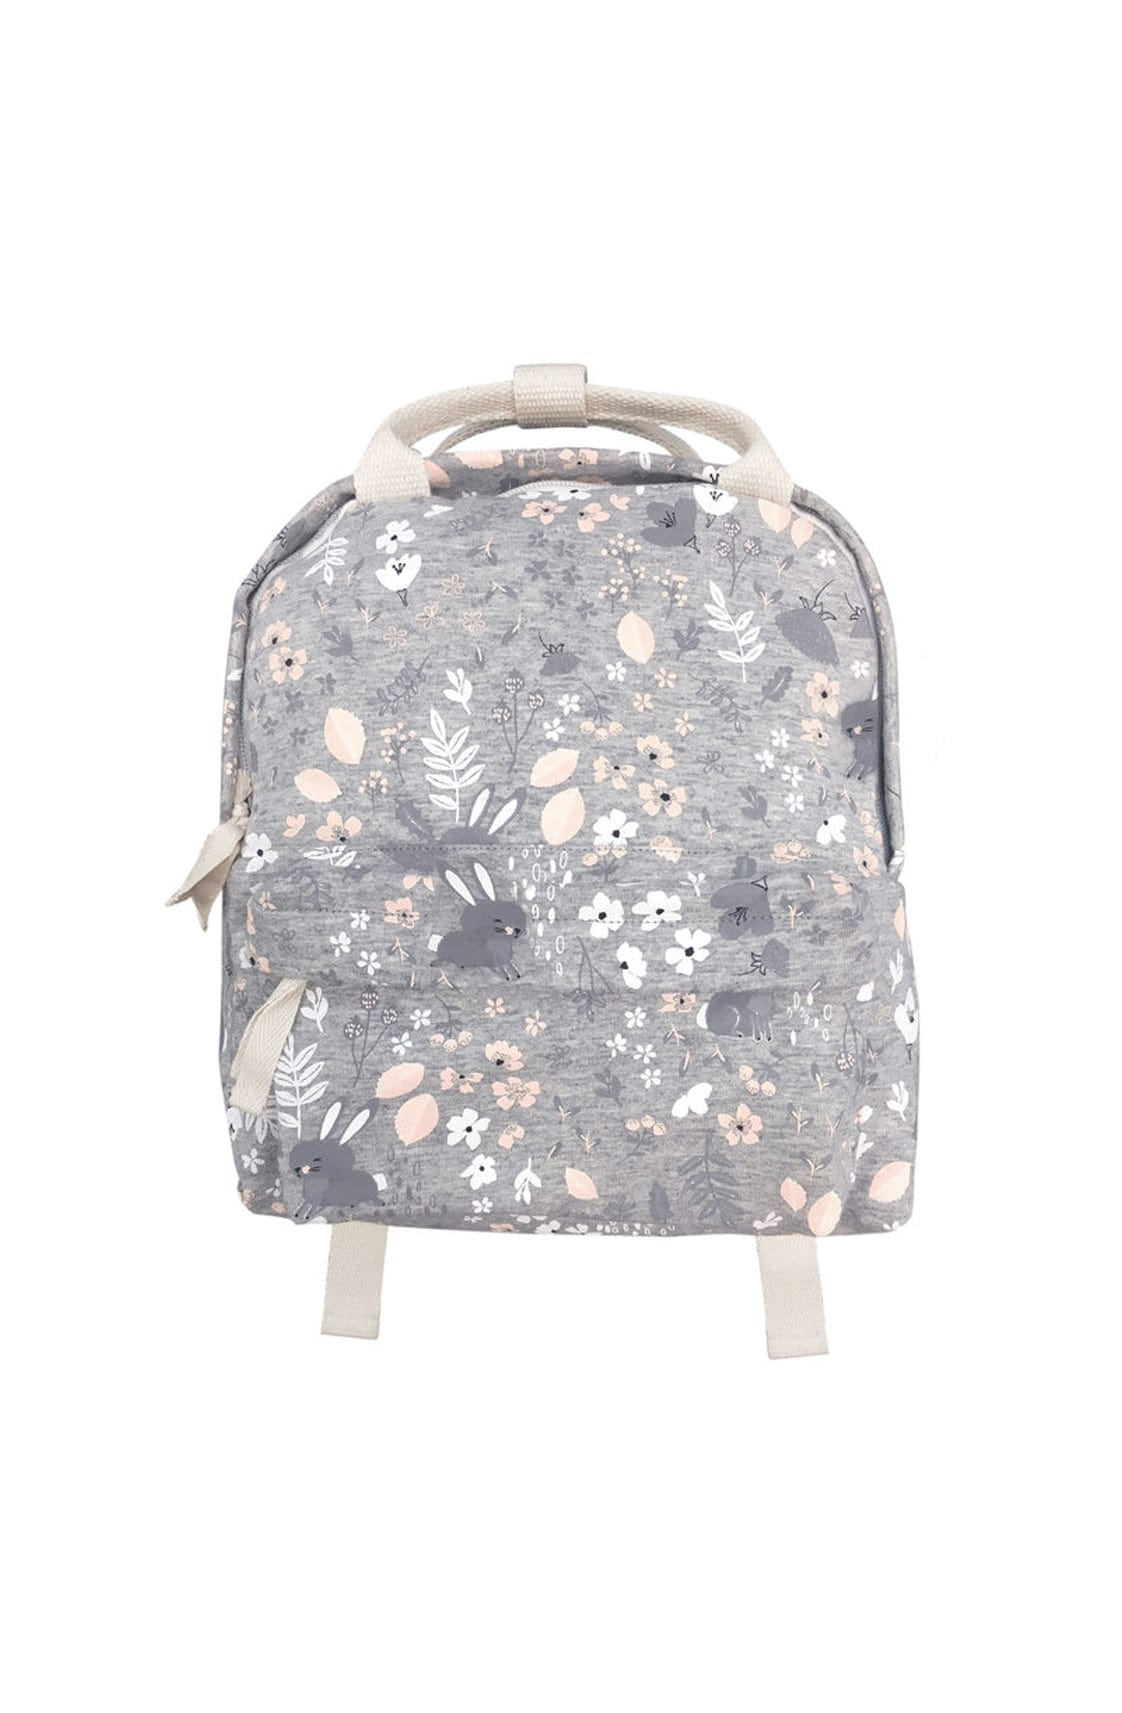 Mister Fly Bunny Floral Back Pack - Hello Little Birdie